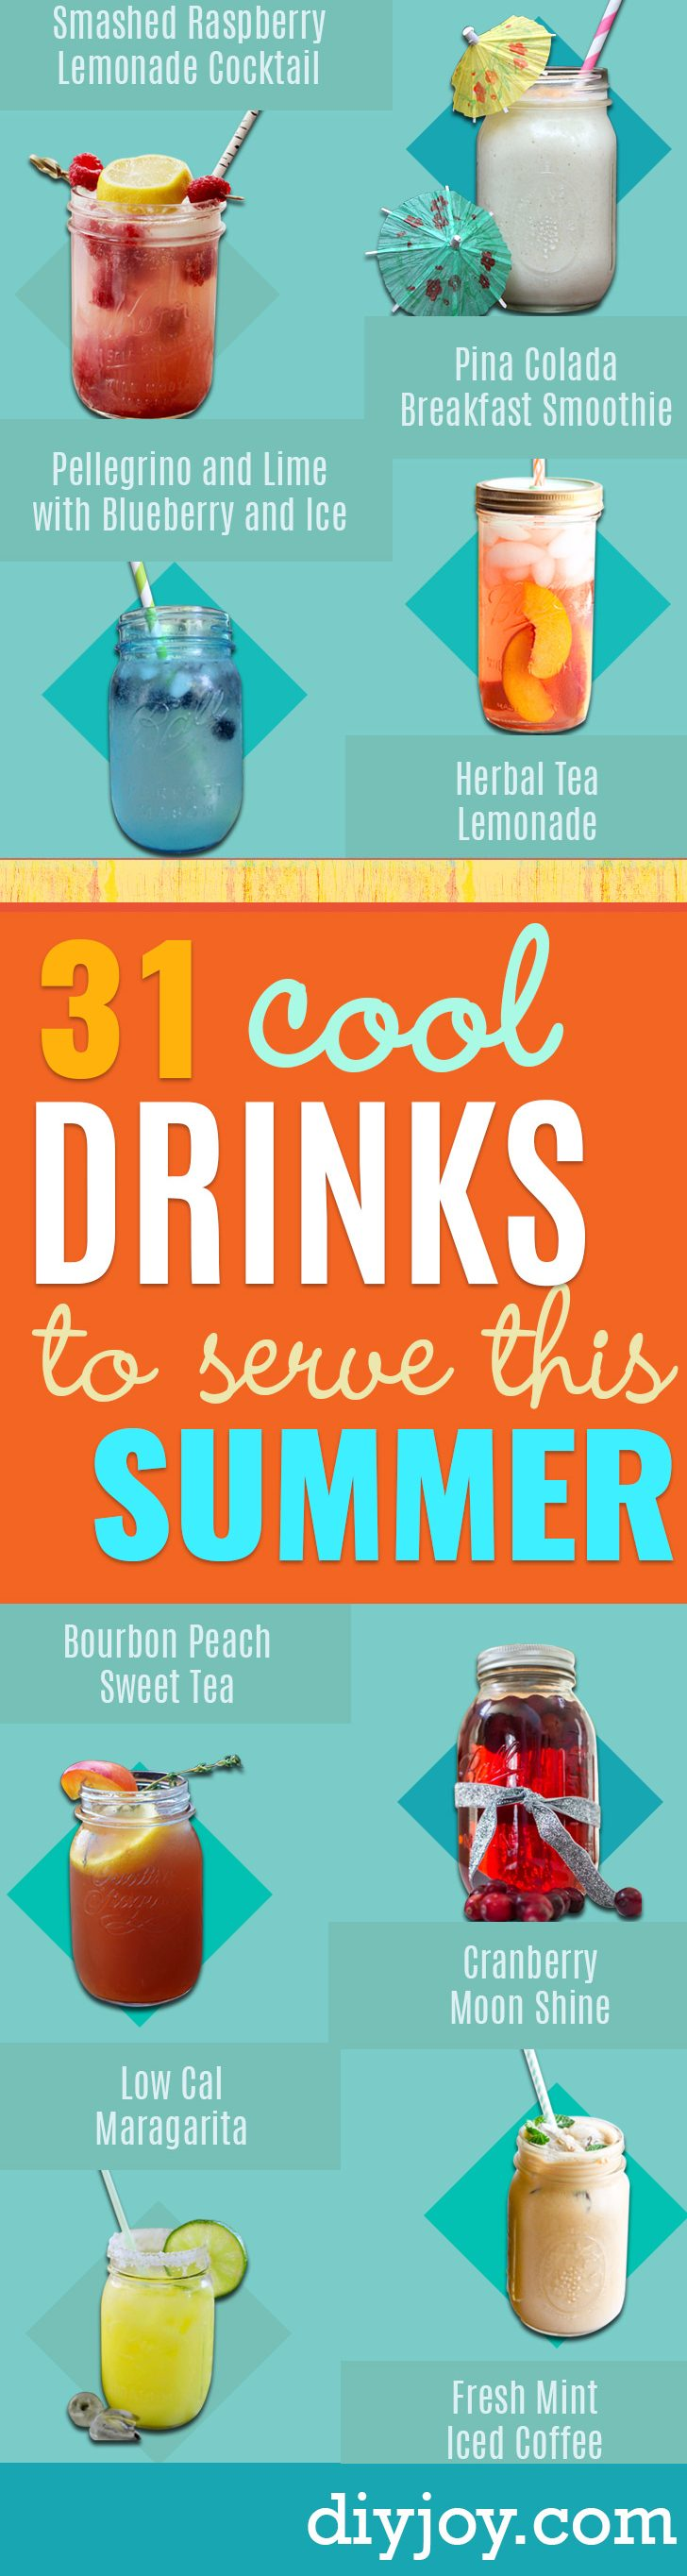 31 Cool Drinks To Serve This Summer